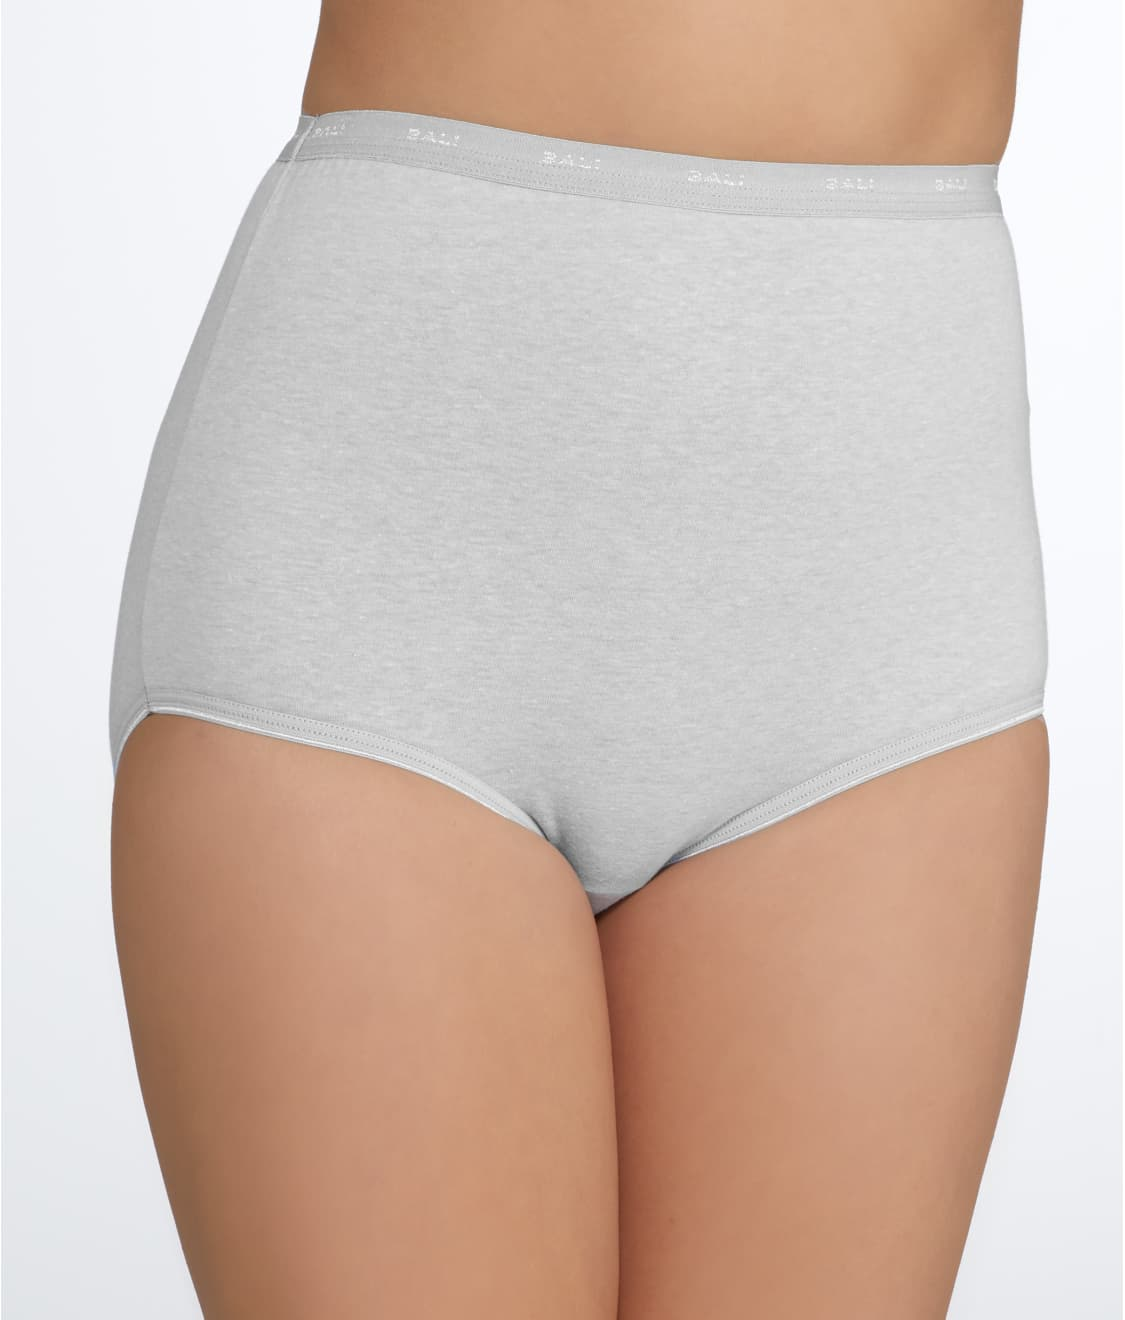 6ddc2ba6ddfa Bali Full Cut Fit Cotton Brief | Bare Necessities (2324)